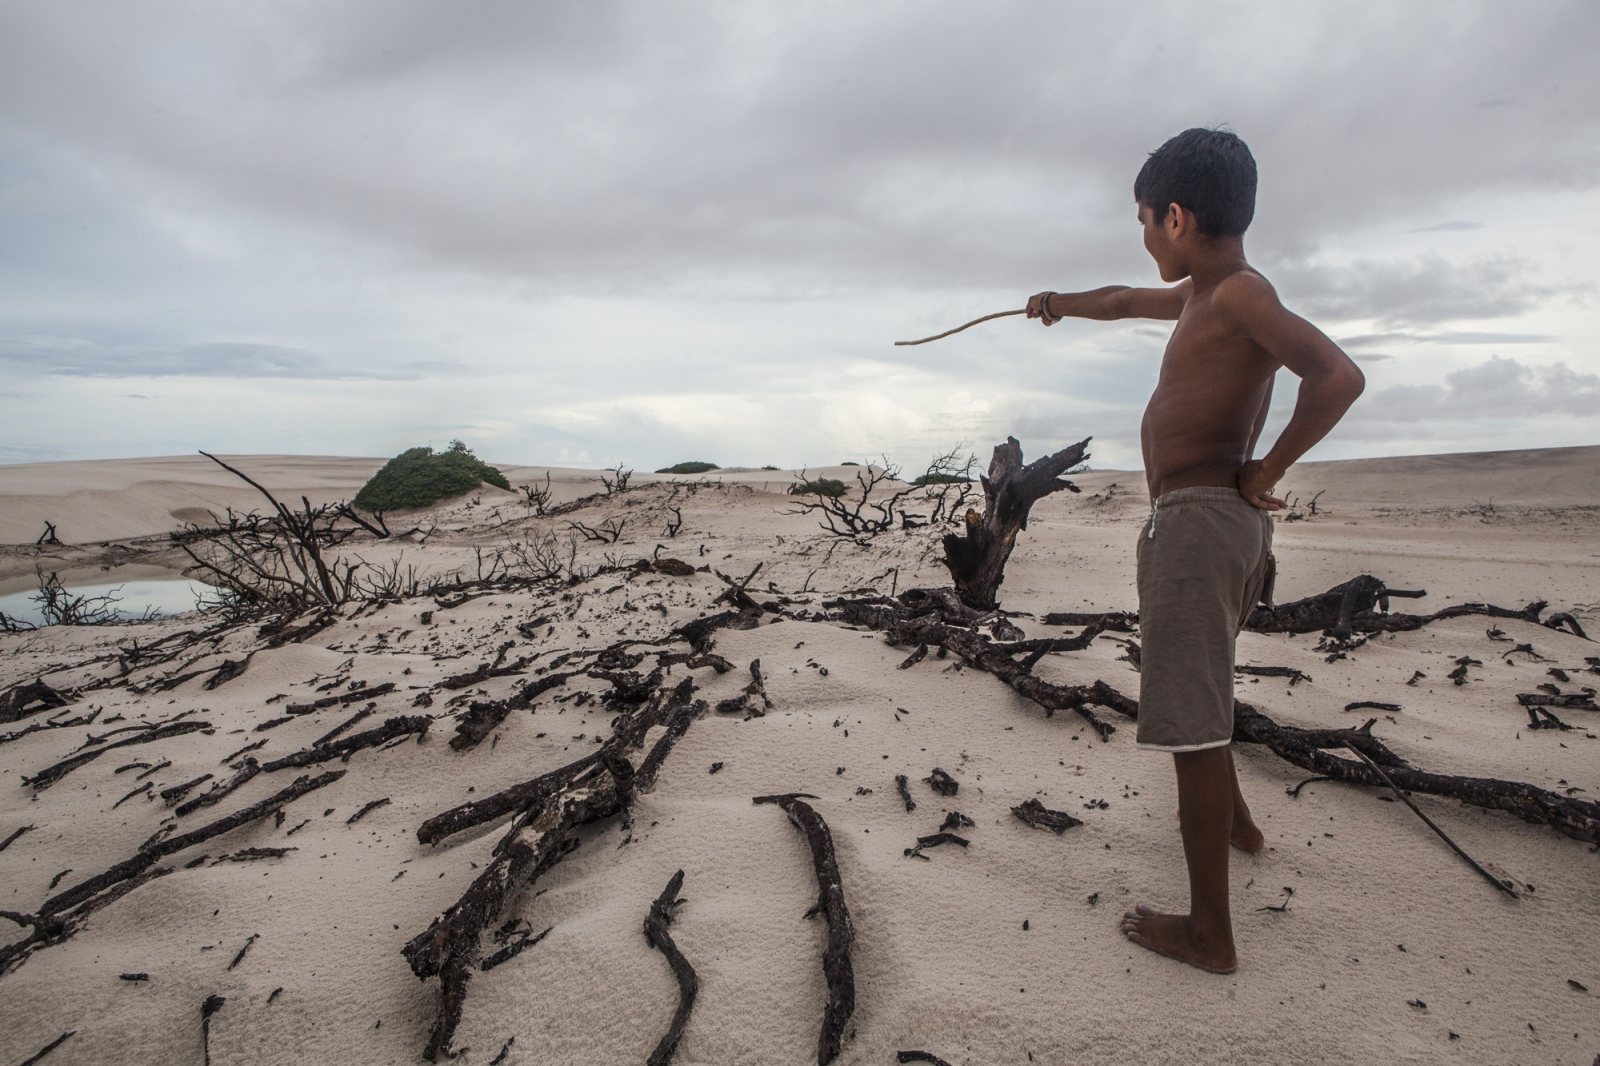 Adriel Brito, 13, points to the place where once was the house of his uncle. After he lost the house for the dunes he decided to move to the nearby city of Santo Amaro. During the summer, the lack of water and the strong winds make the dunes advance and take over parts of the oasis. But not only their life is threaten by the tourism and the sand. The Brazilian Institute of the Environment and Natural Resources (IBAMA) is planning to remove them since they live in a National Park.